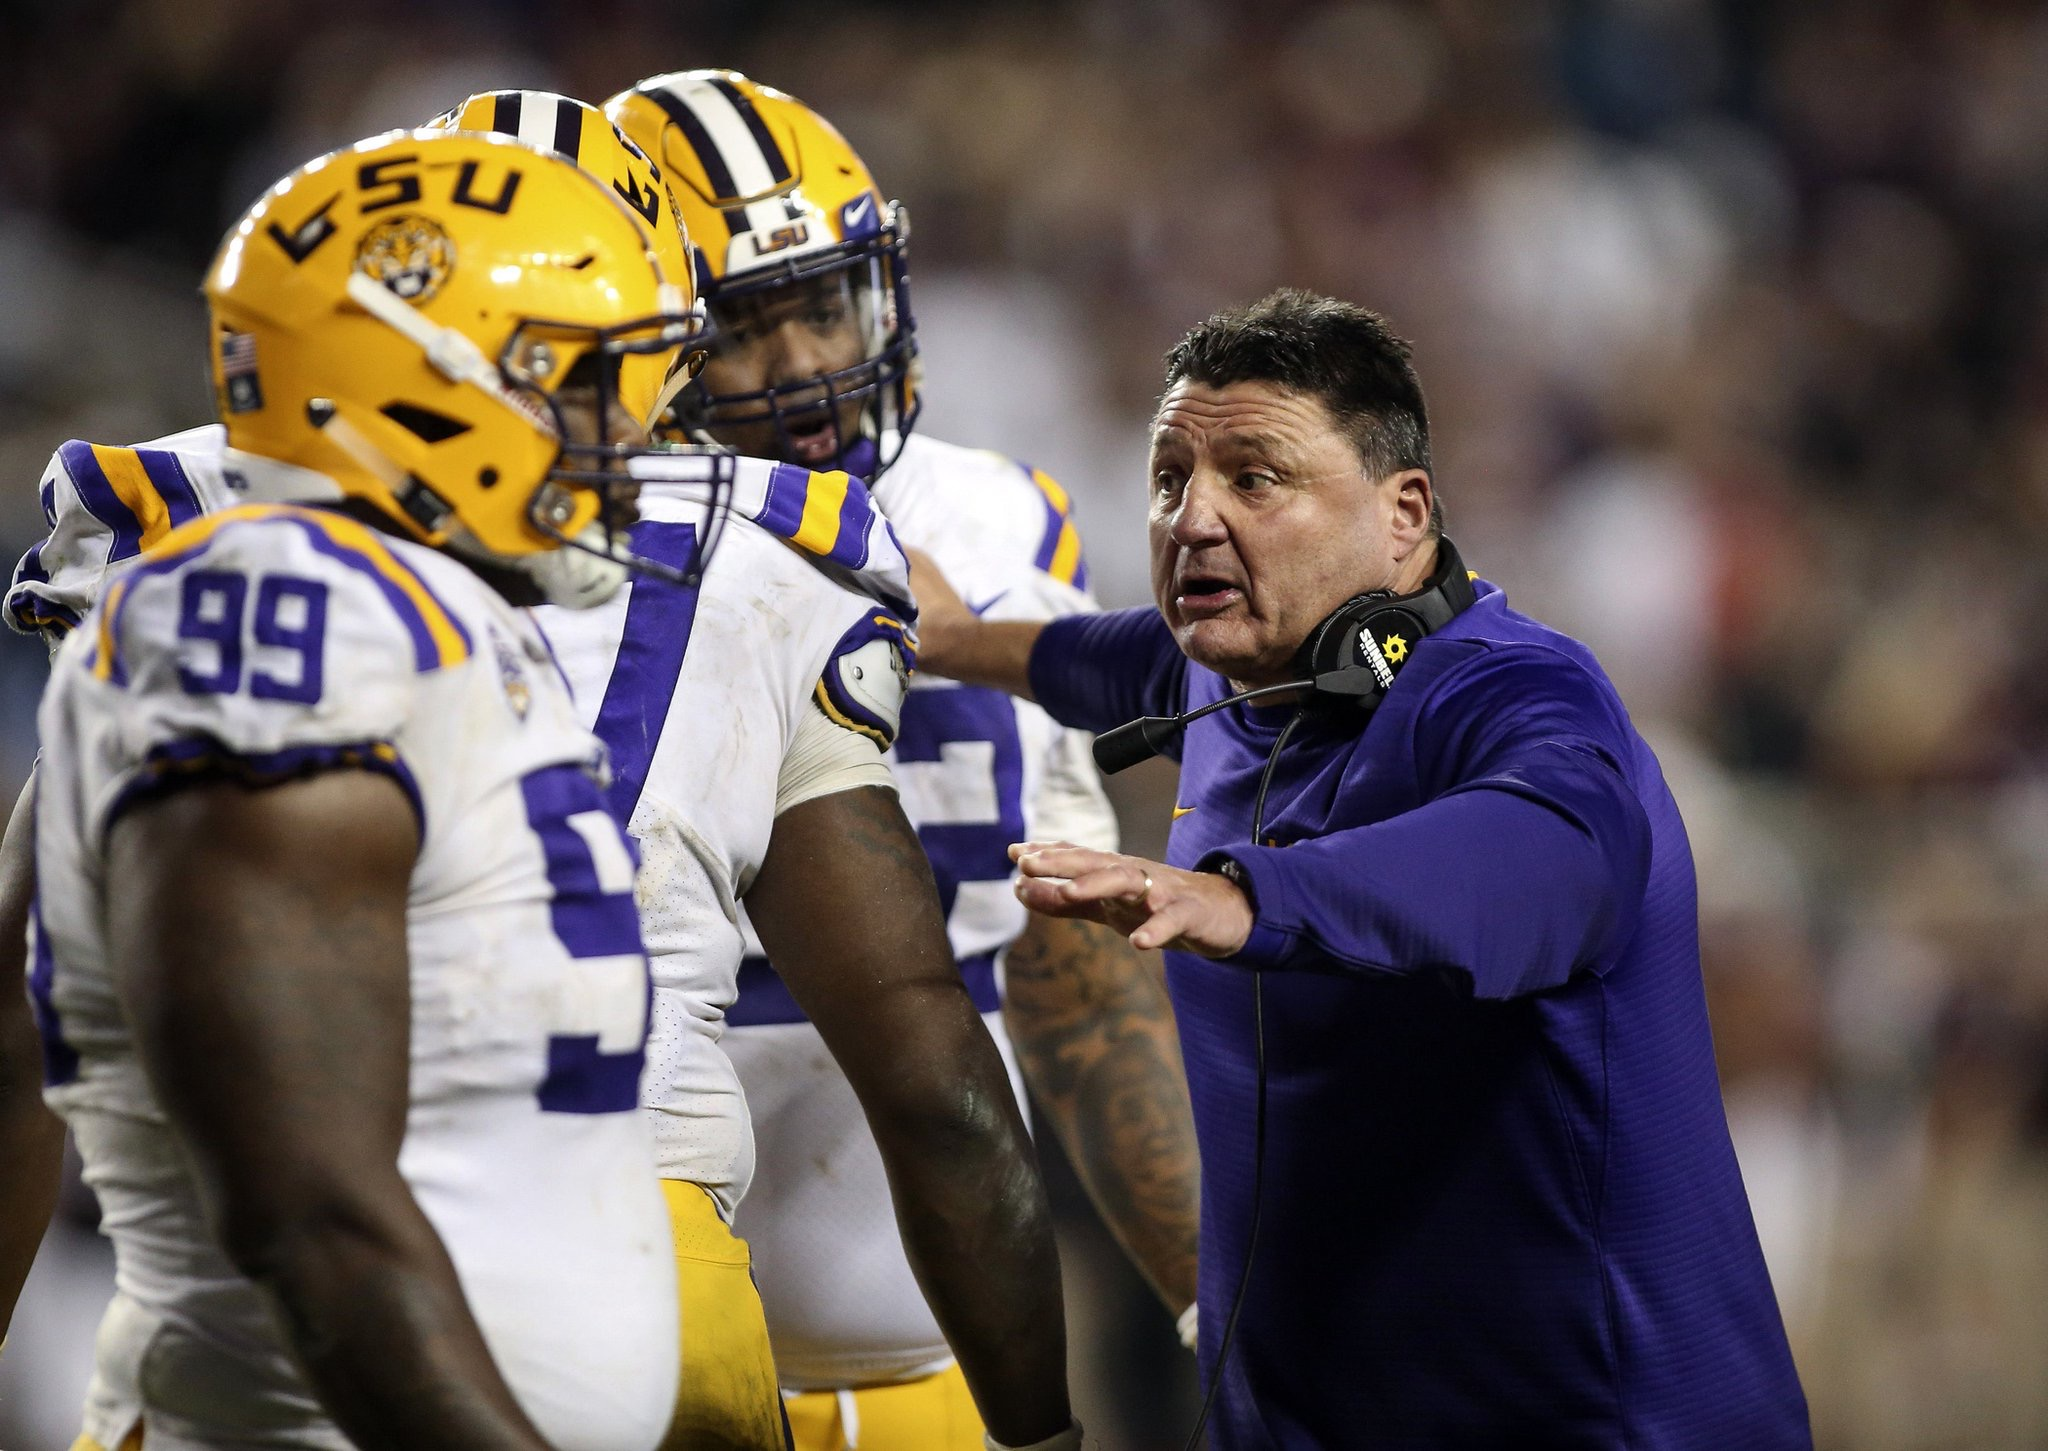 LSU bowl projections after Saturday's loss to A&M